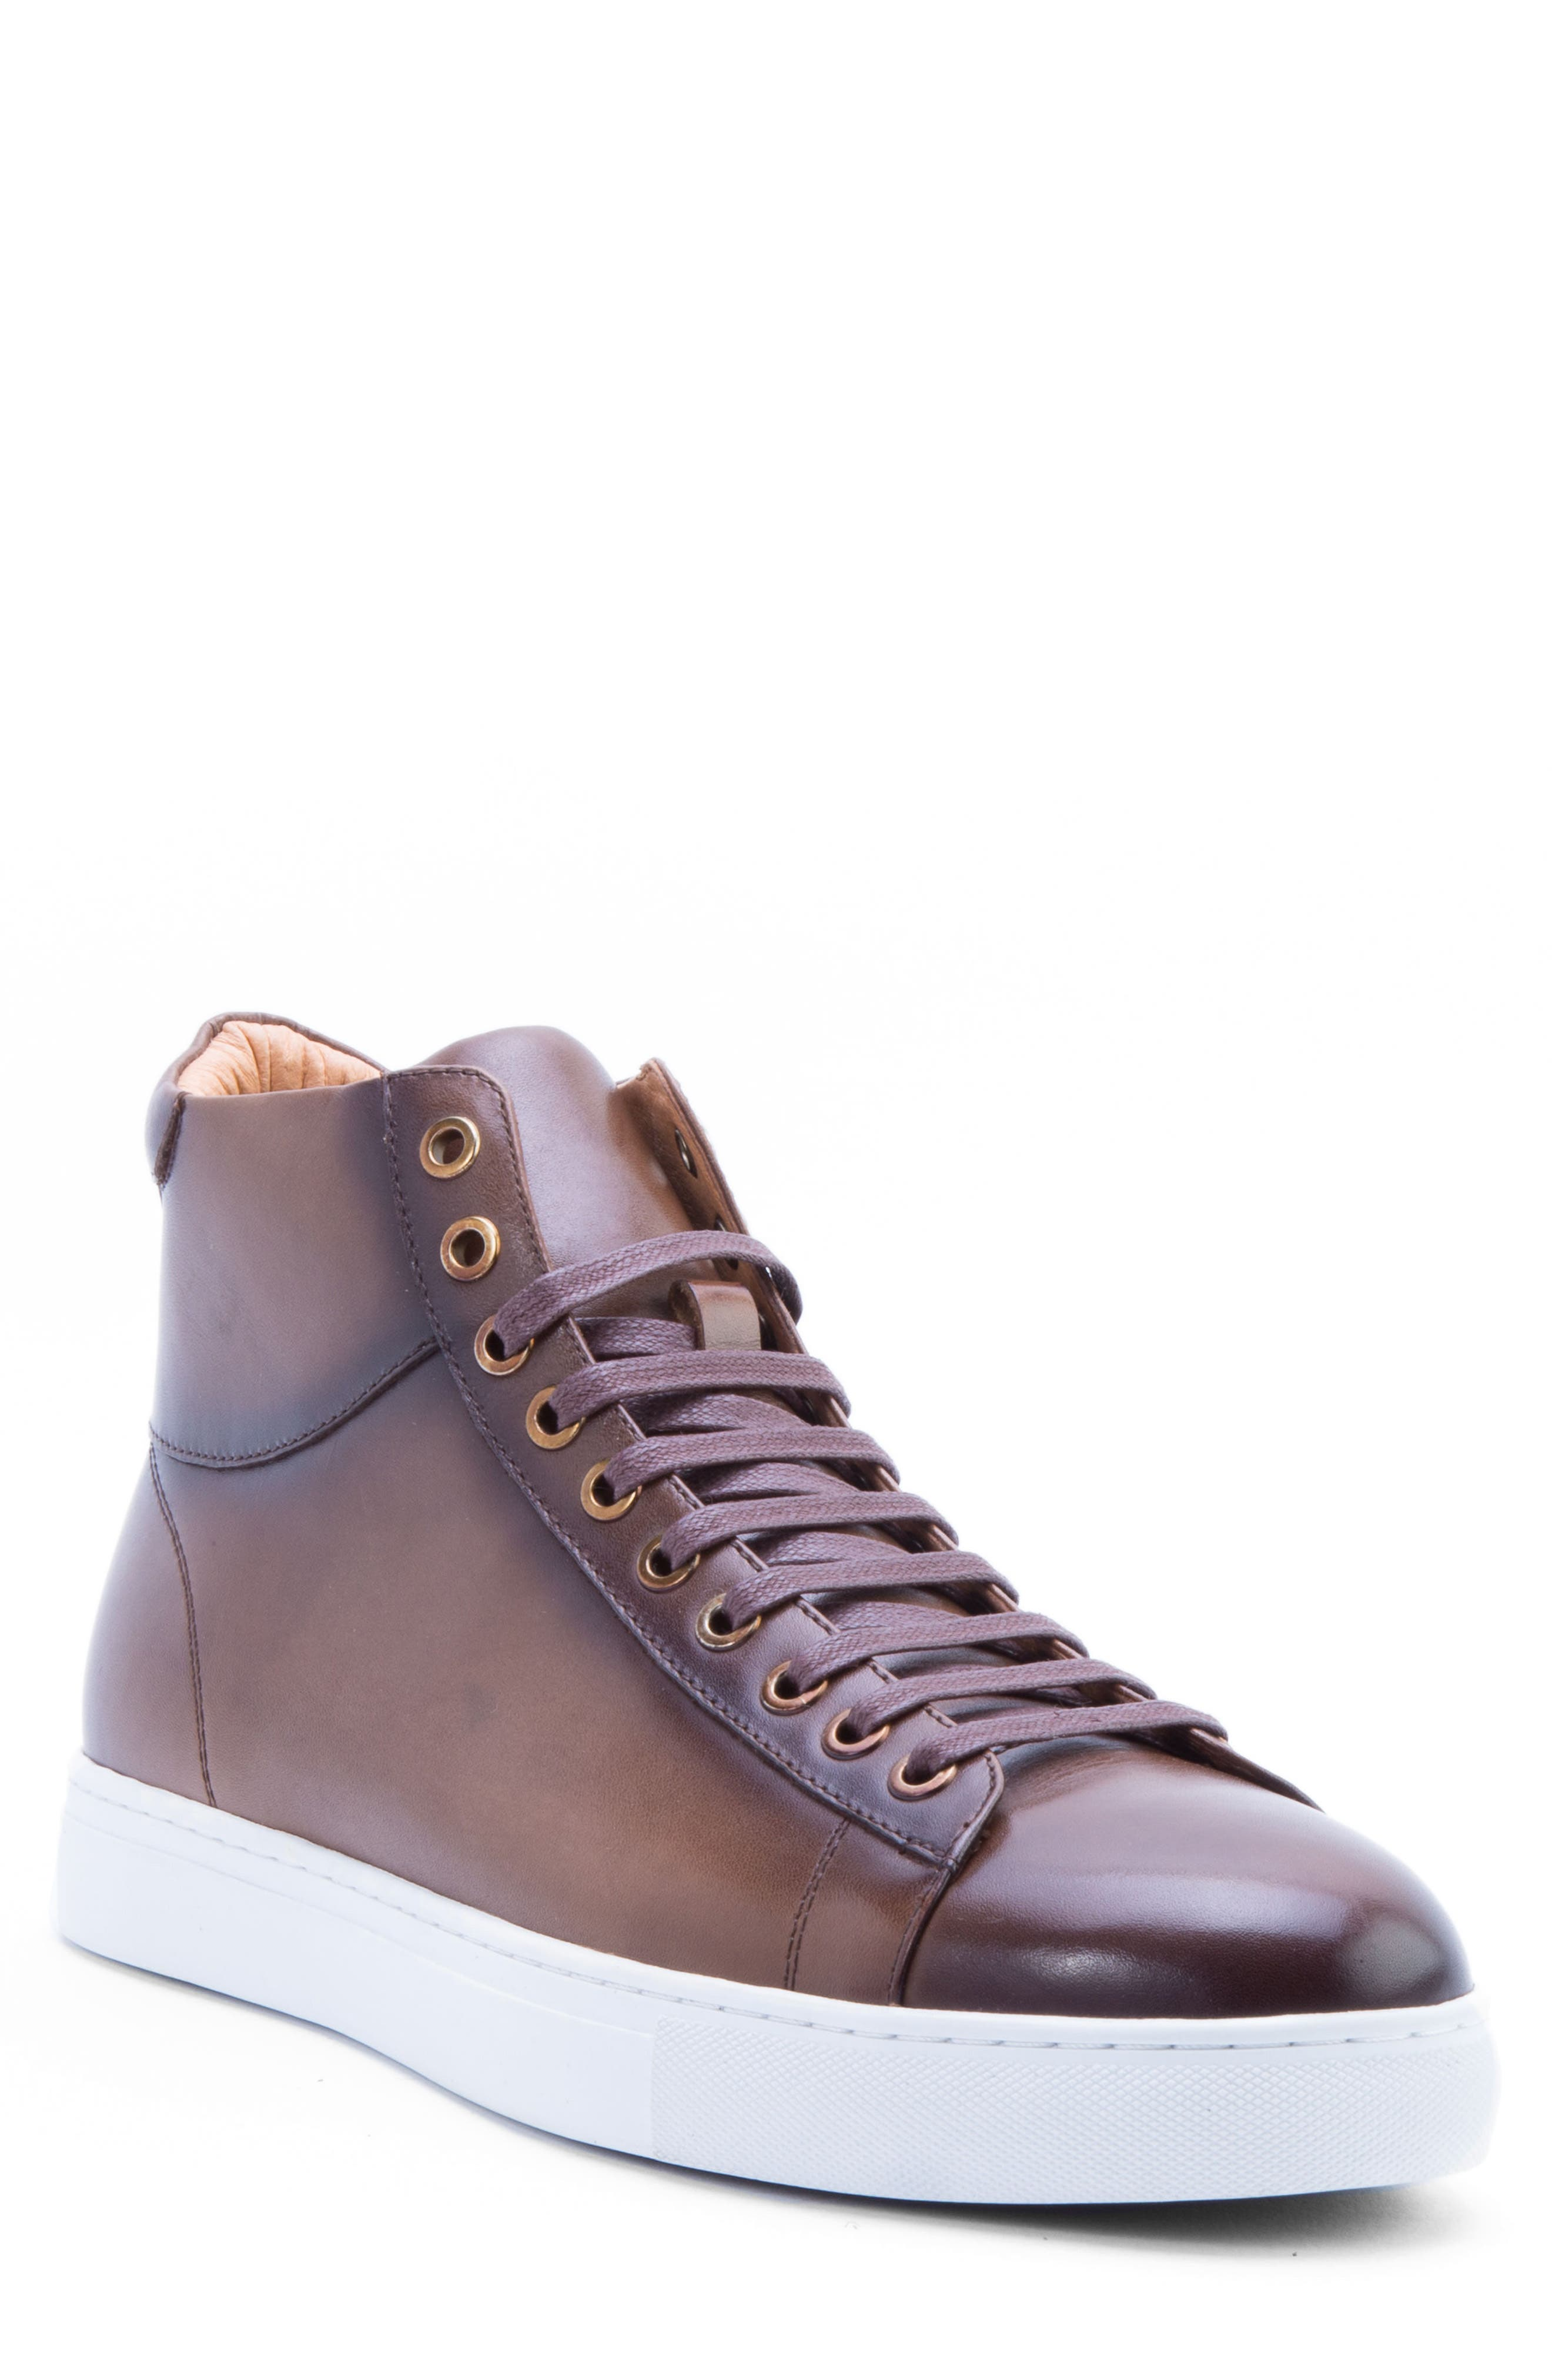 Spinback High Top Sneaker,                         Main,                         color, 200